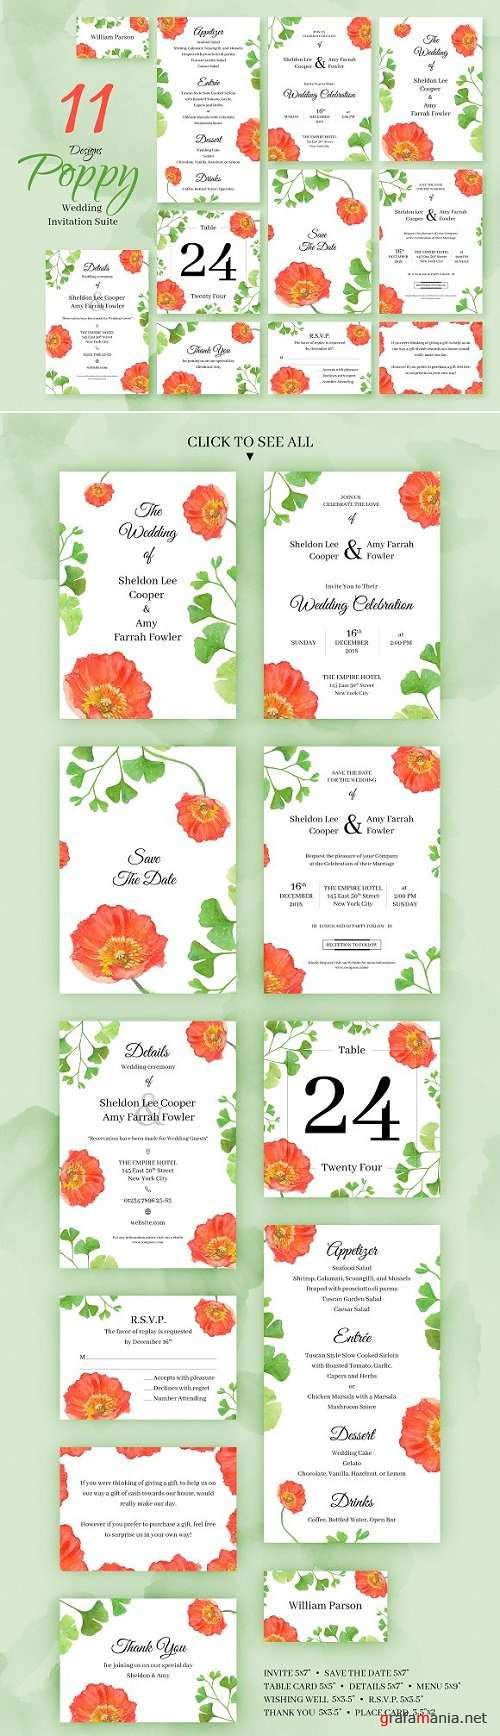 Poppy. Wedding Invitation Package 2236180